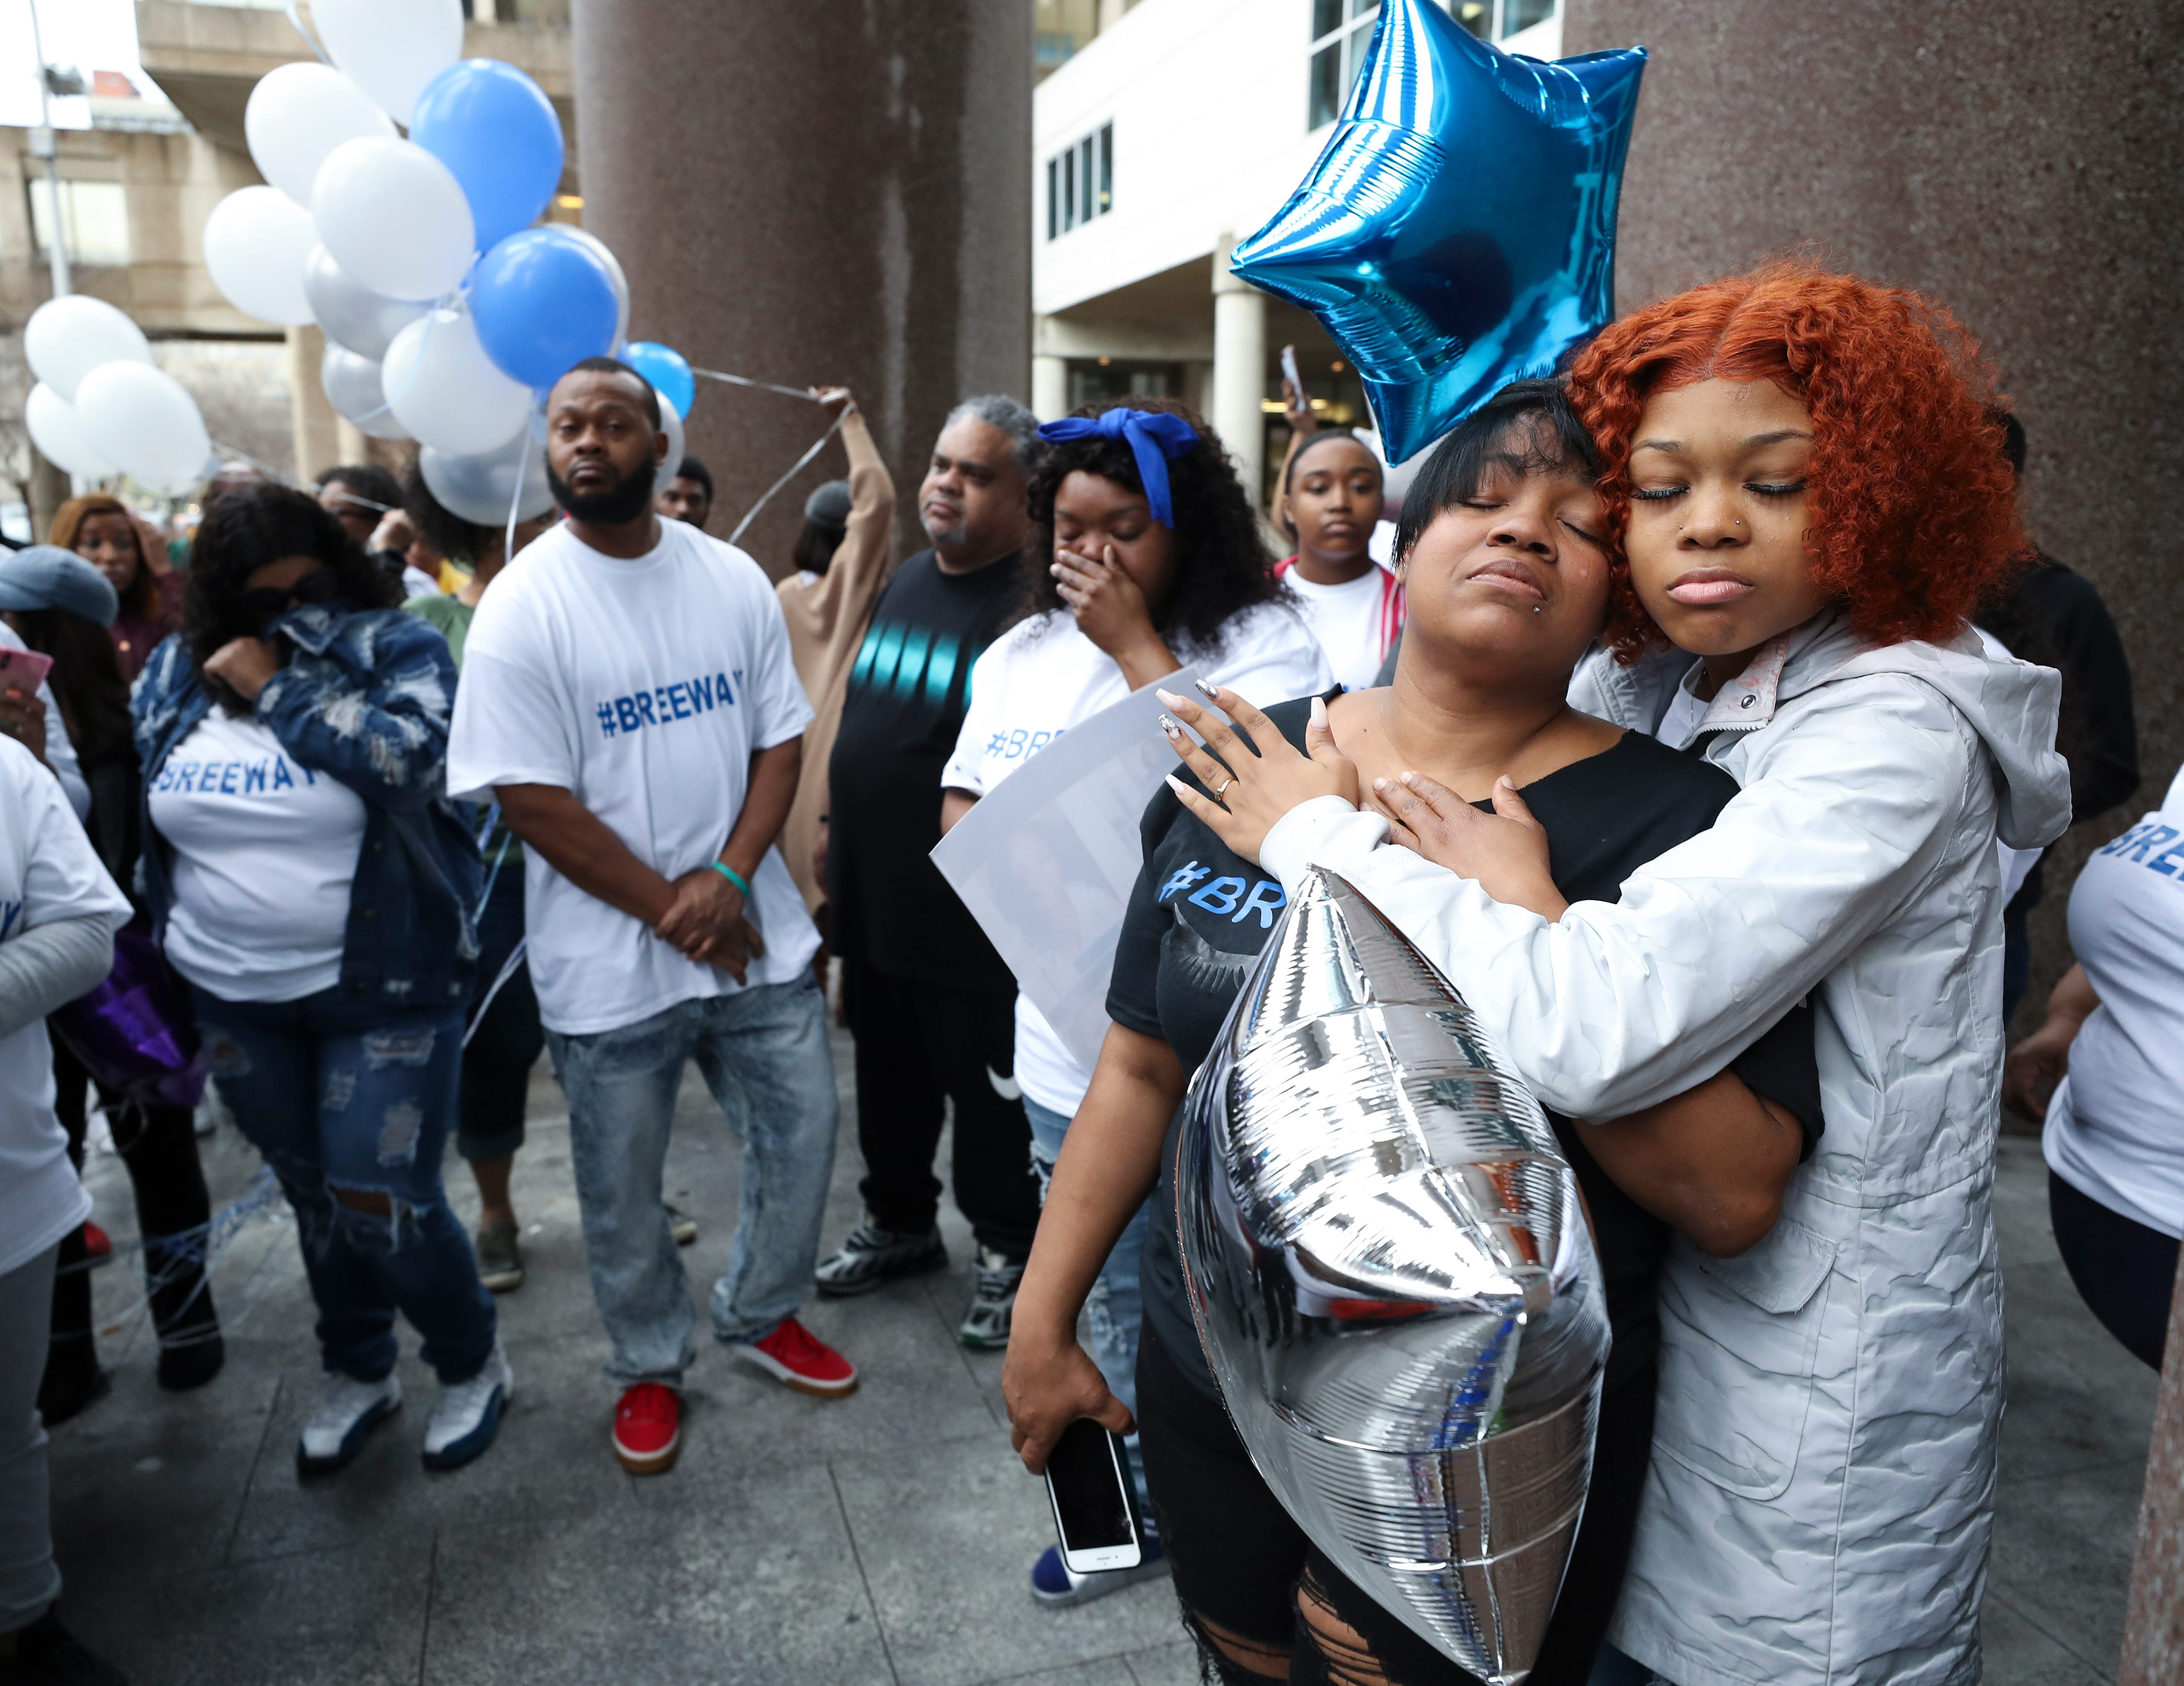 Tamika Palmer, left, embraced her daughter Juniyah Palmer during a vigil for her other daughter, Breonna Taylor, outside the Judicial Center in downtown Louisville, Ky. on Mar. 19, 2020.  Taylor was killed during an officer-involved shooting last week.  The family chose the vigil site because it is across the street from the Louisville Metro Police Department.